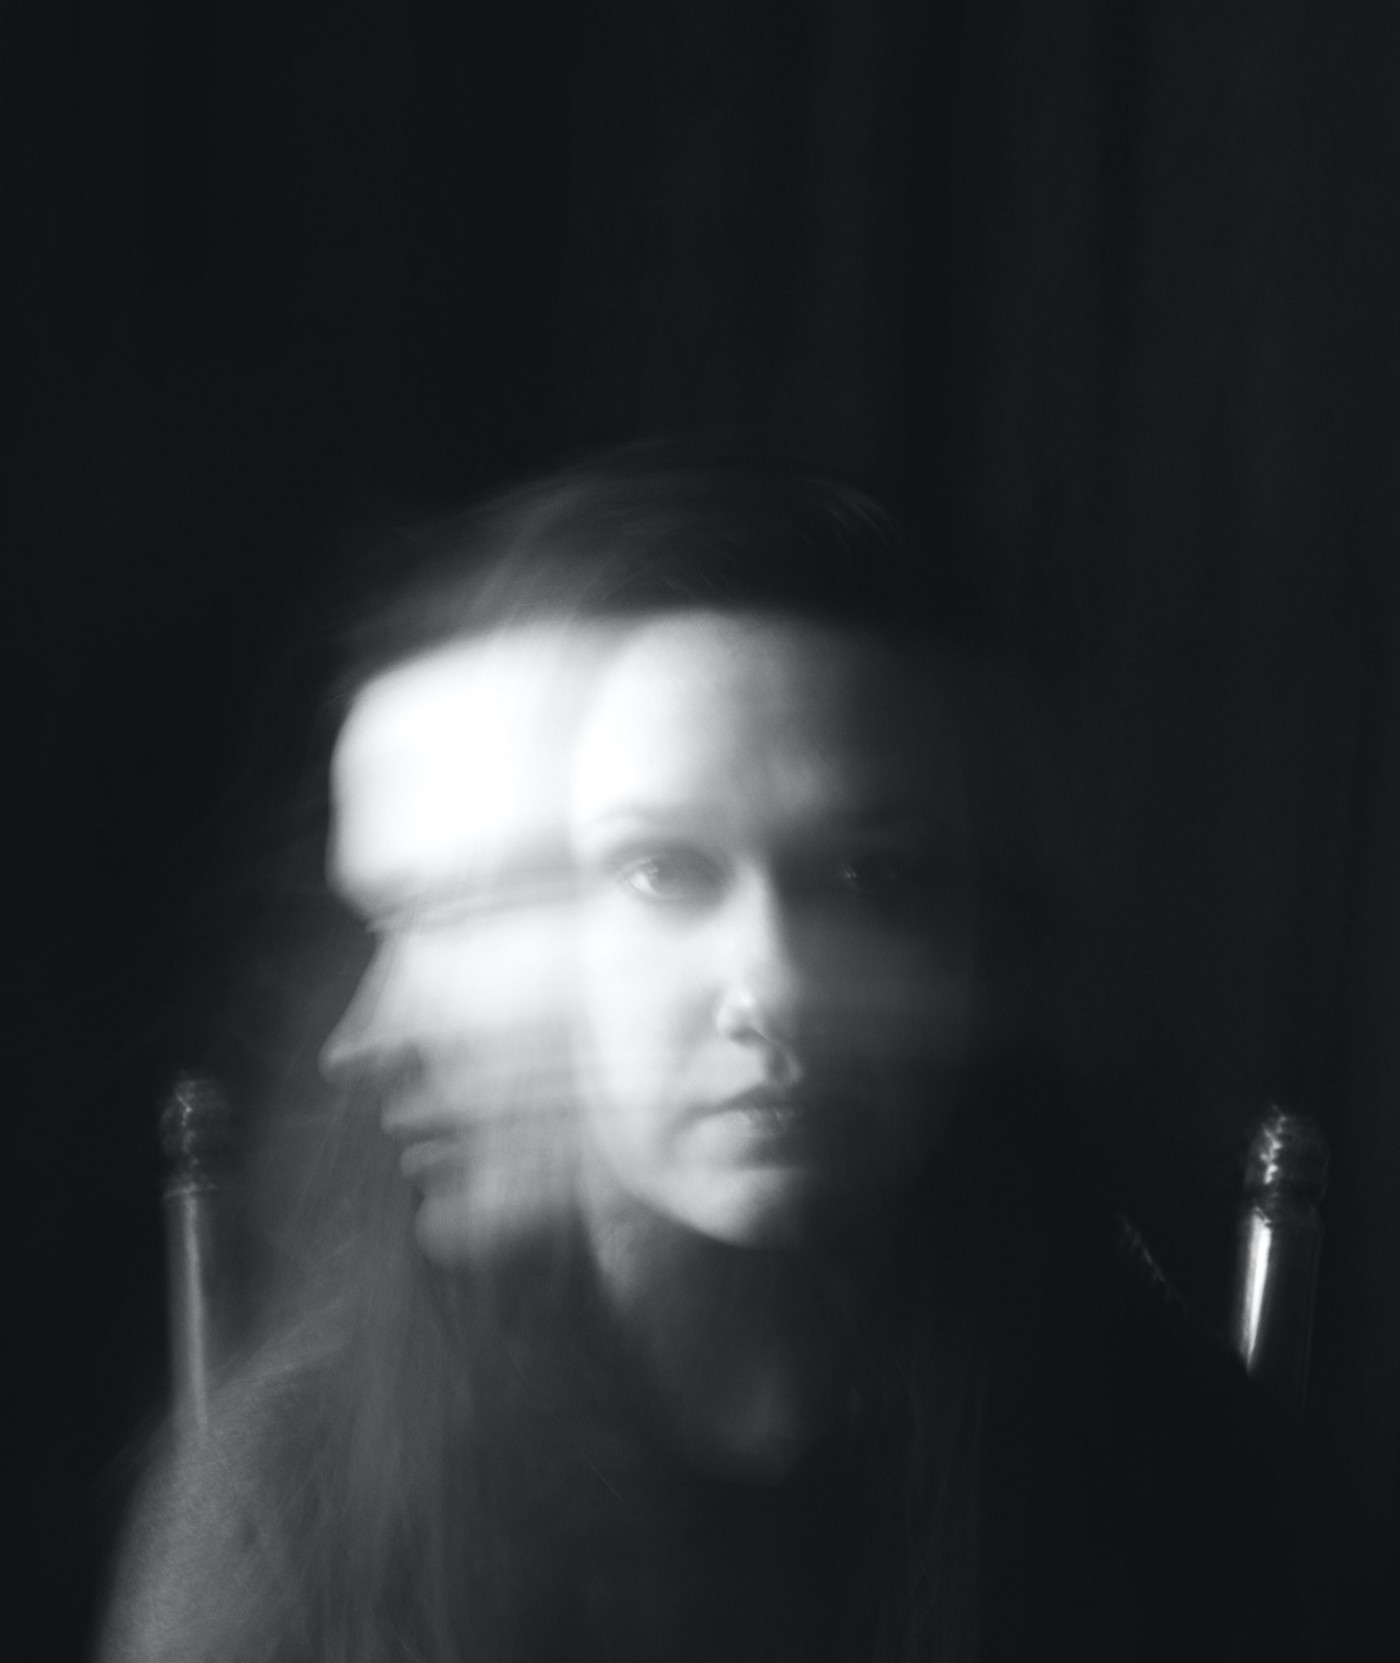 womens blurred face